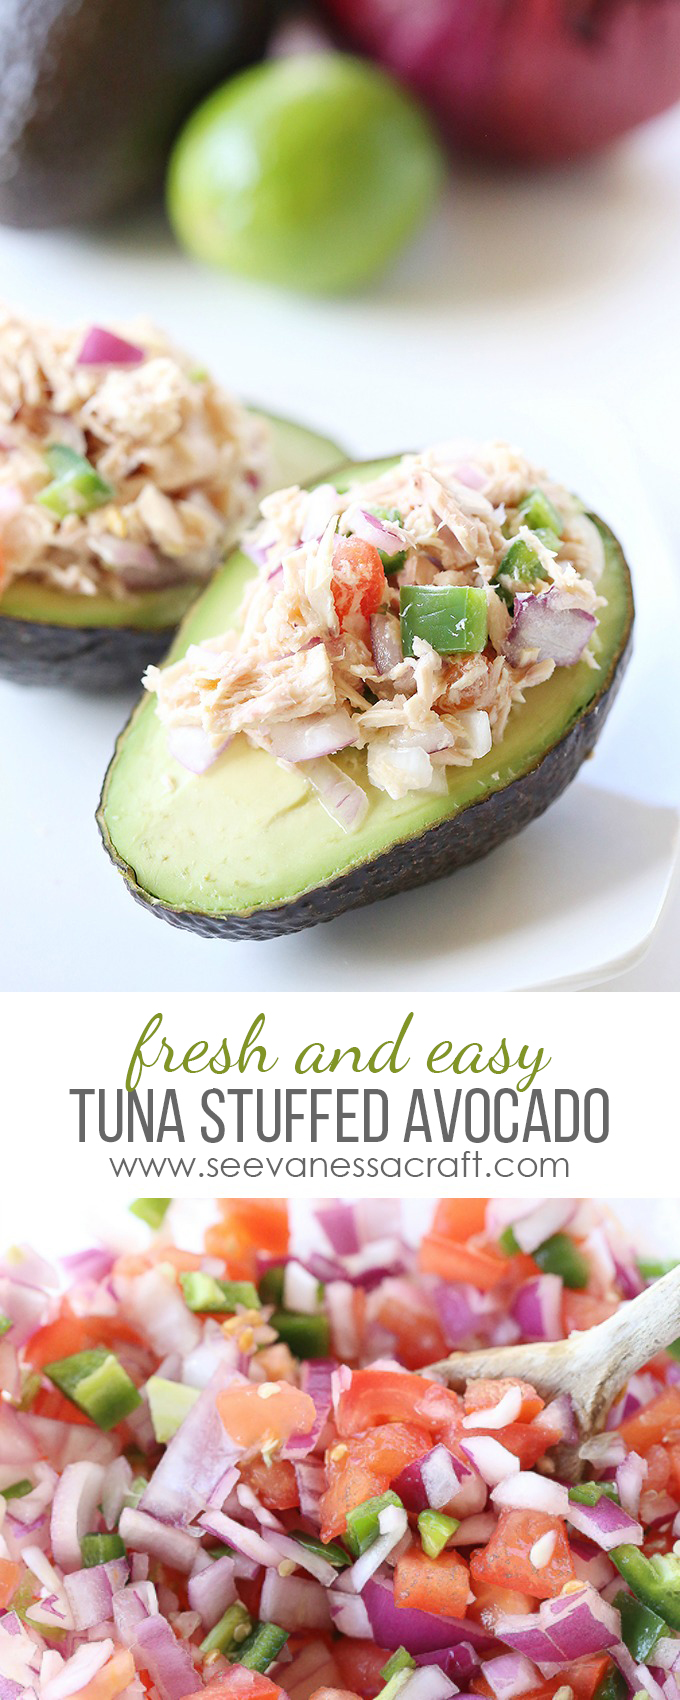 tomato-and-jalapeno-tuna-stuffed-avocados-recipe